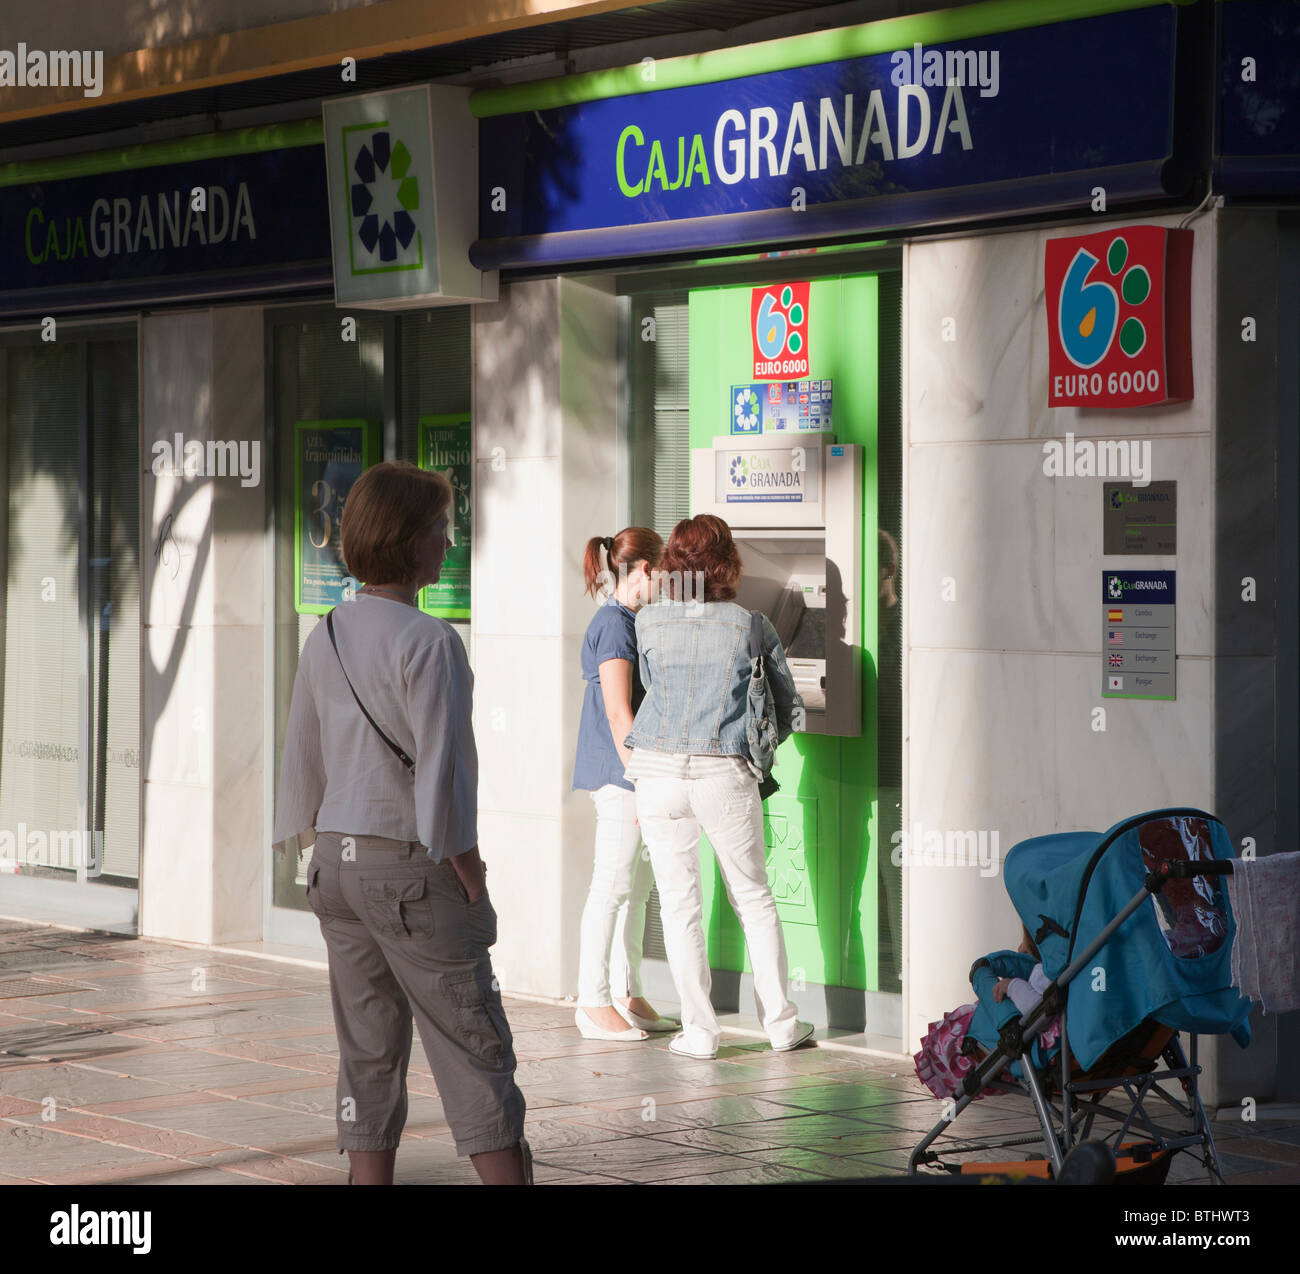 Clients taking money from cash point outside Caja Granada branch in Fuengirola, Malaga Province, Costa del Sol, - Stock Image